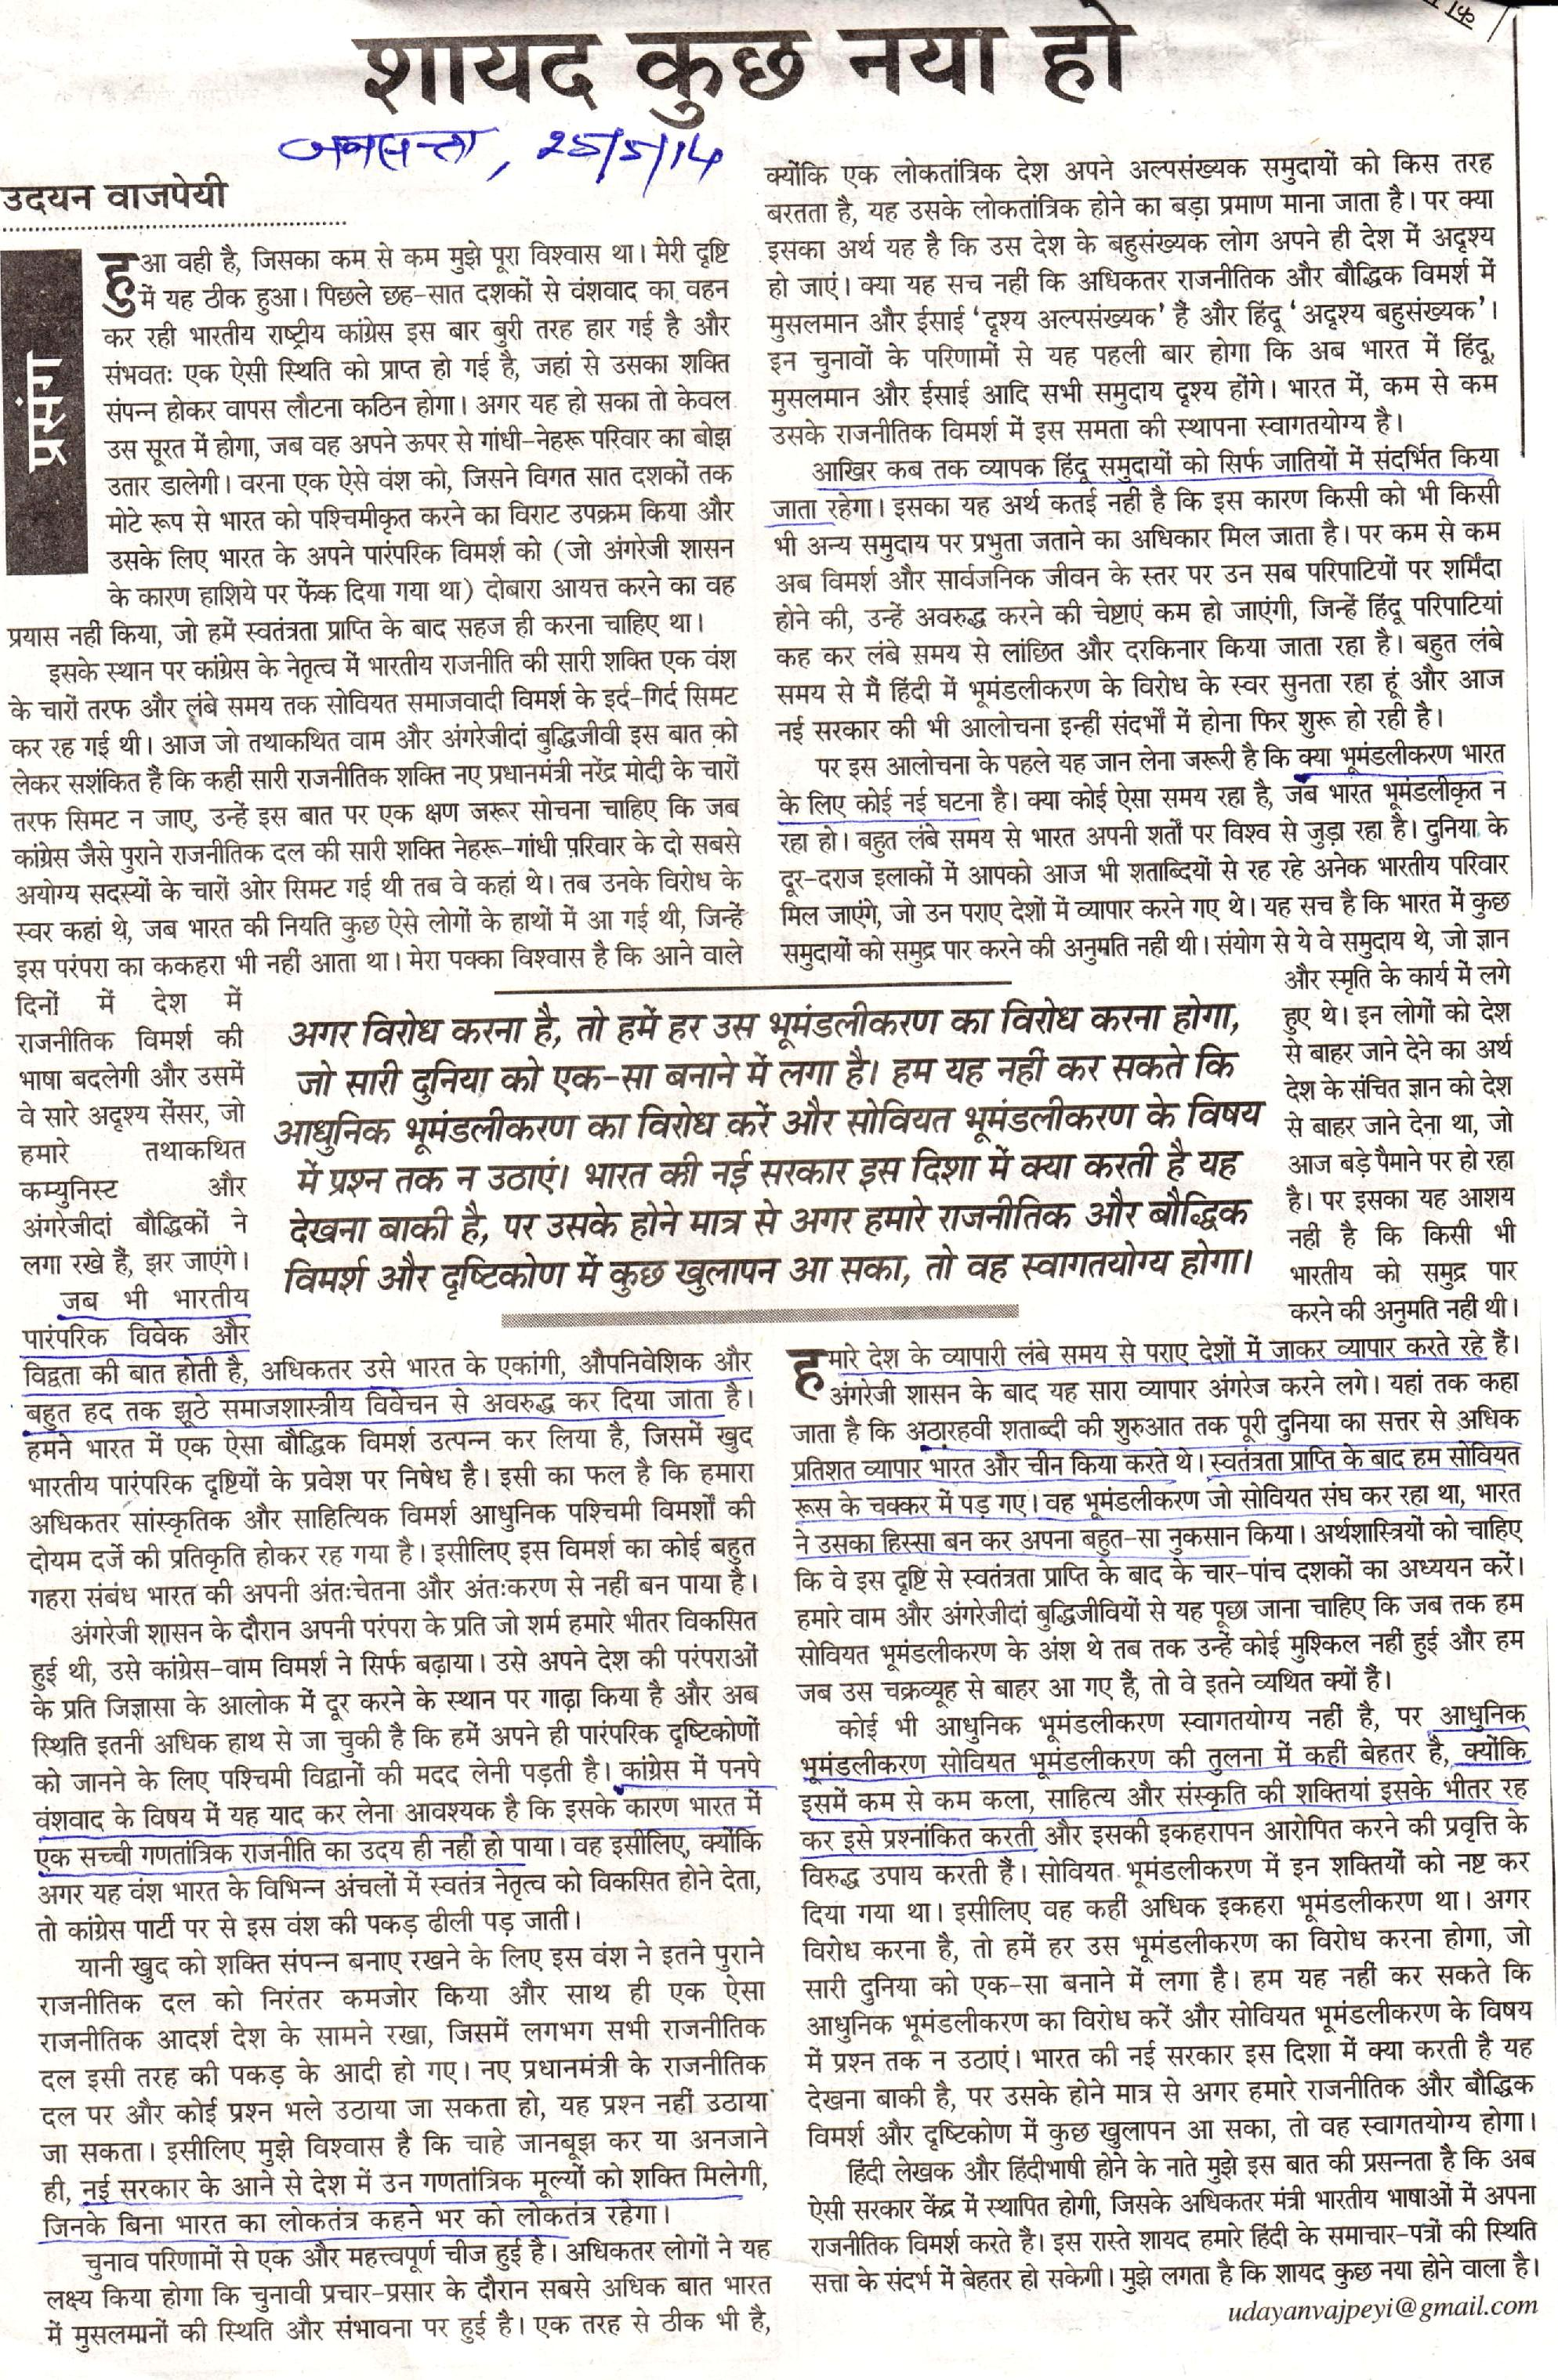 IMG_0008-page-001